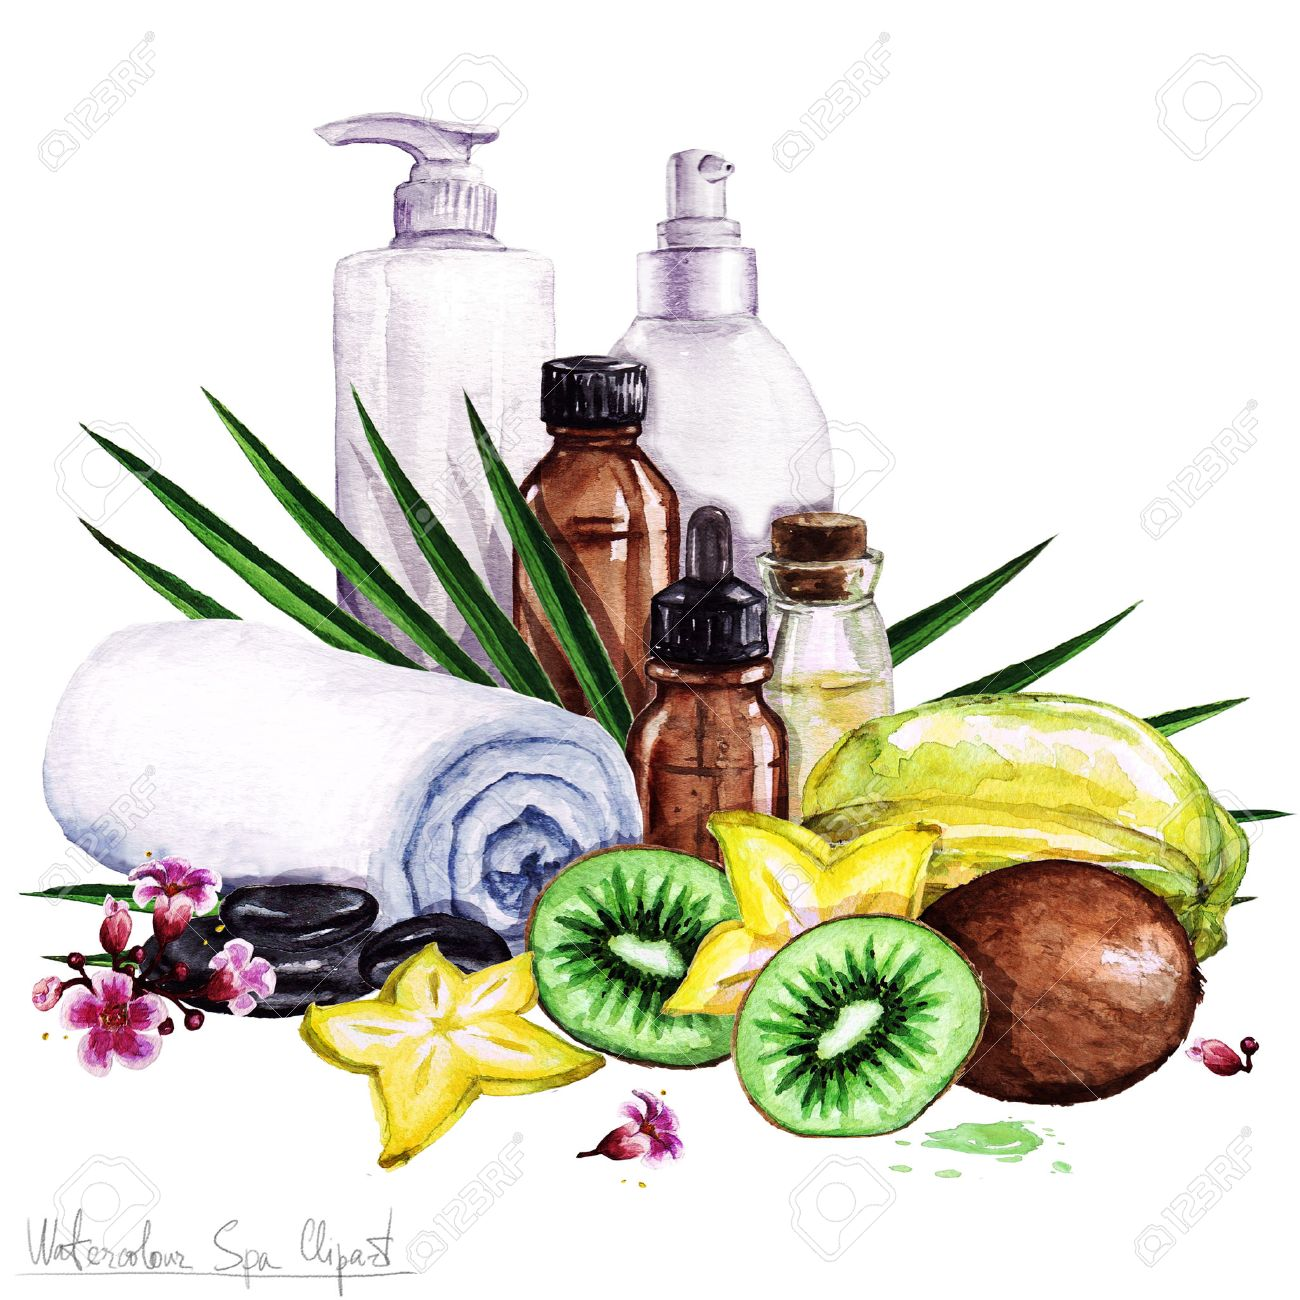 watercolor spa clipart collection of spa and beauty products rh 123rf com spa clip art free images spa clipart background